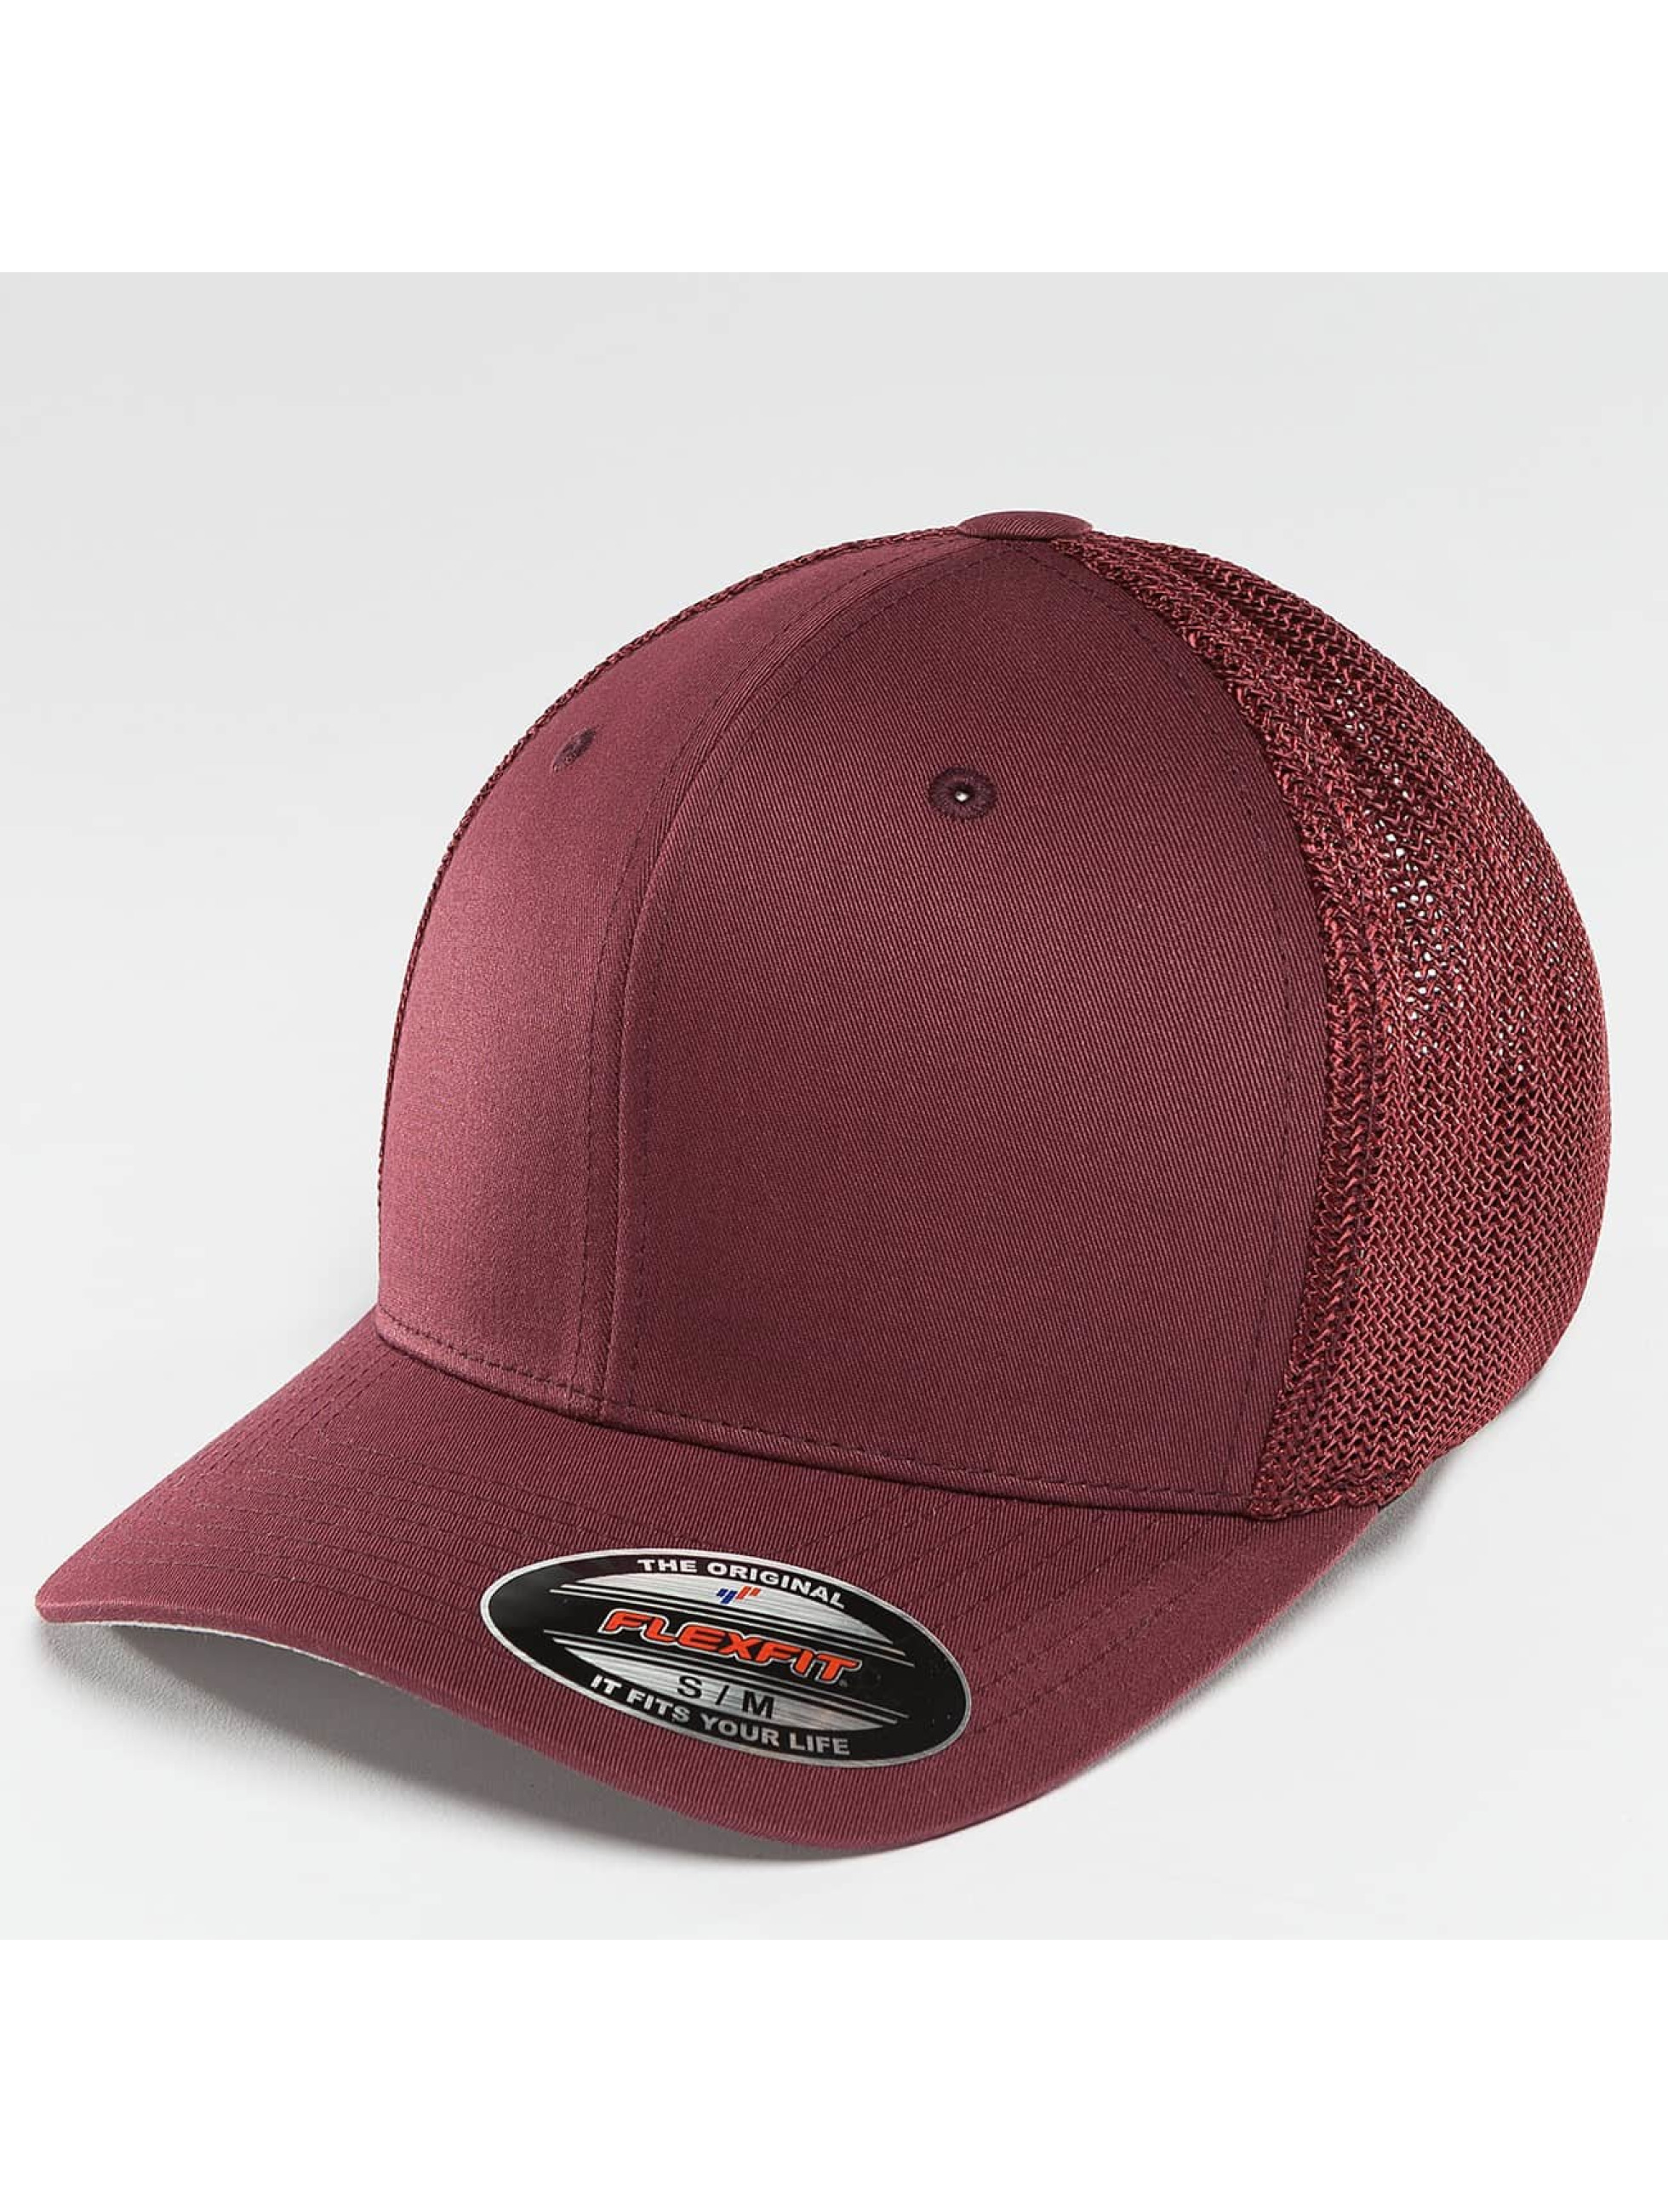 Flexfit Flexfitted Cap Mesh Cotton Twill rosso